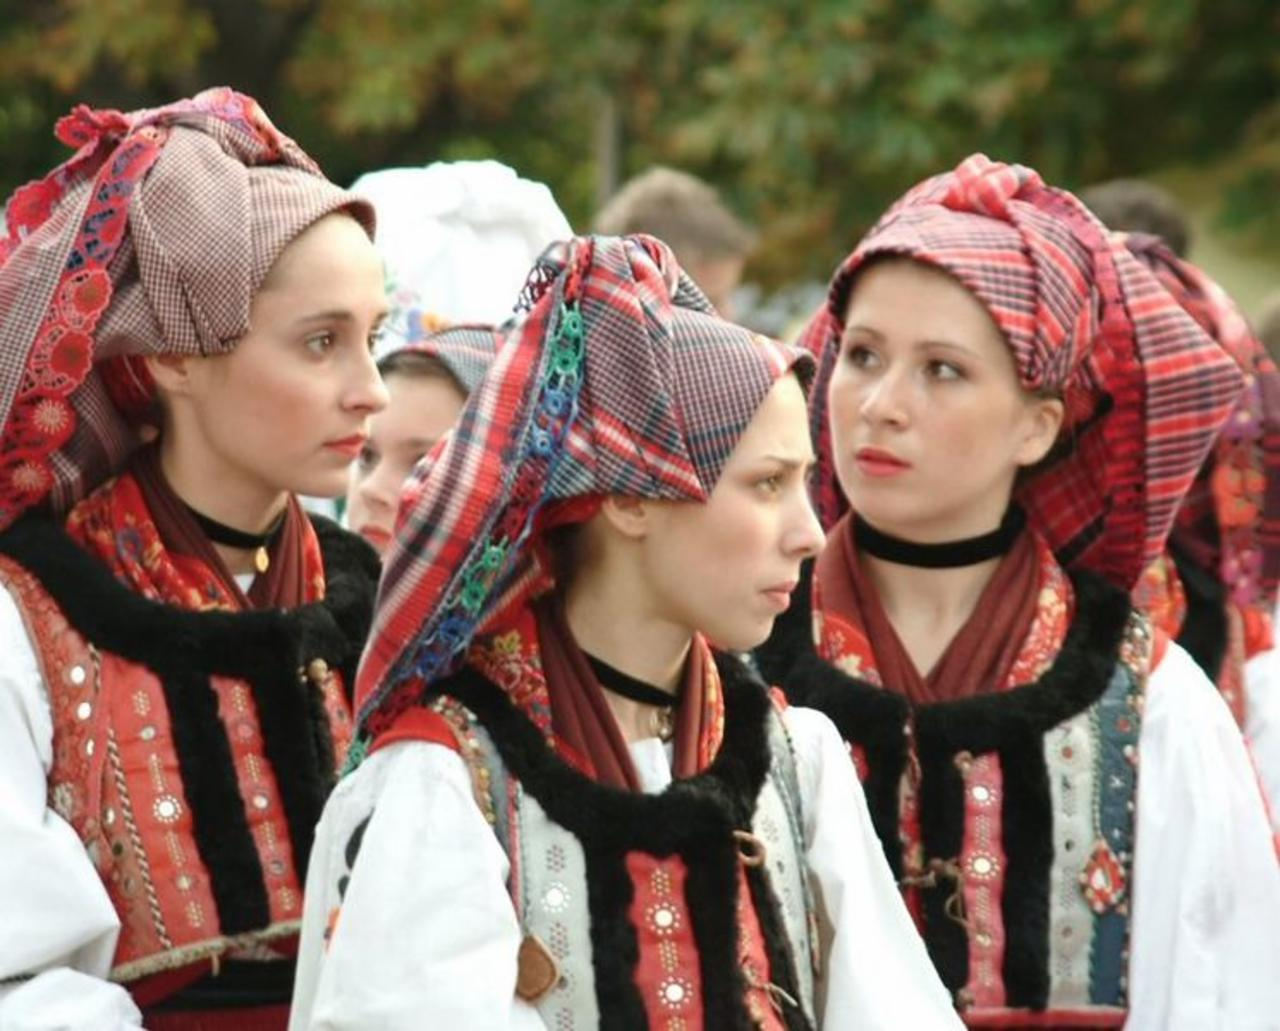 Croatian_girls_in_folklore_costume_in_Hungary